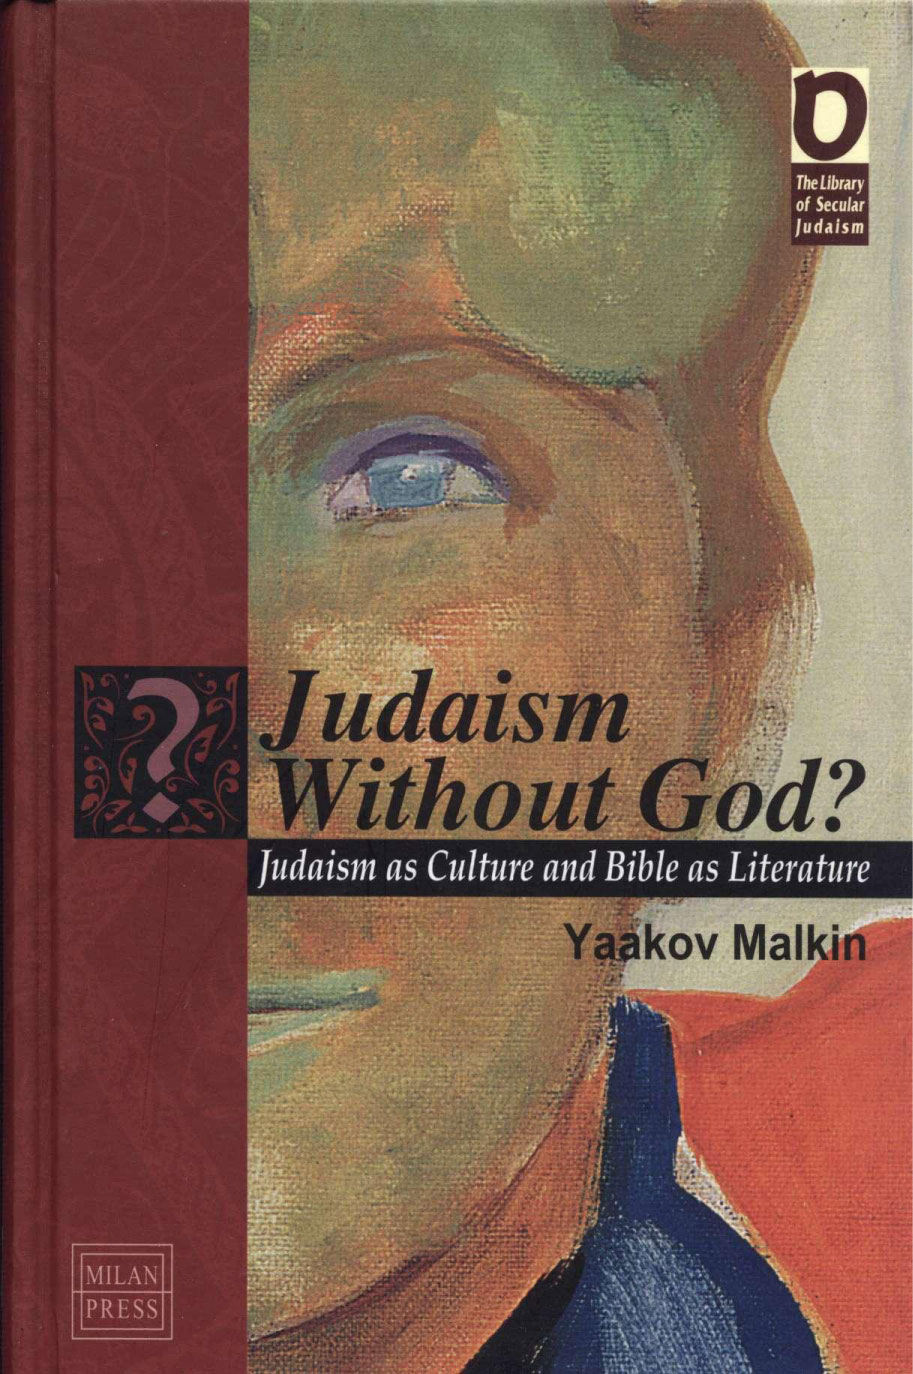 Judaism without God - Yaakov Malkin, English, 2007